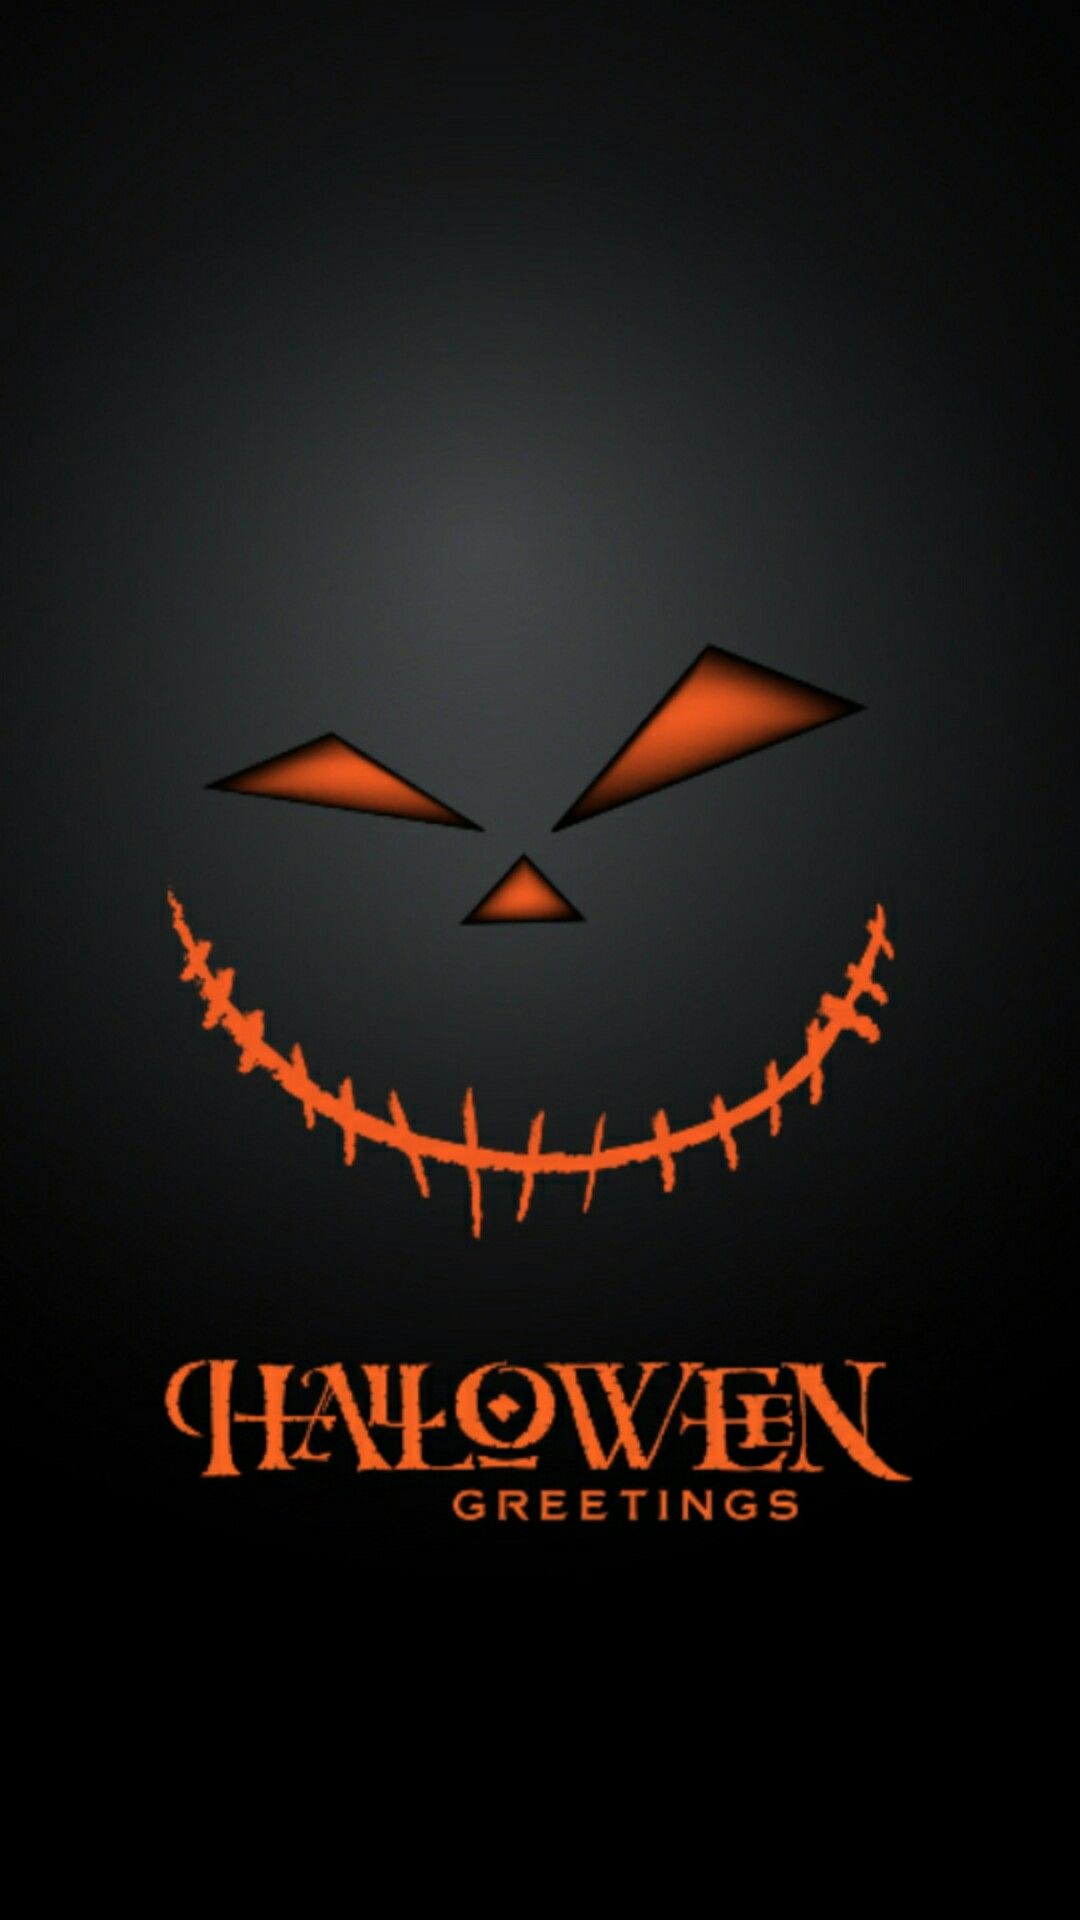 Good Wallpaper Halloween Smartphone - a2f69122de7a860b92aa055902a105db  Photograph_7937.jpg